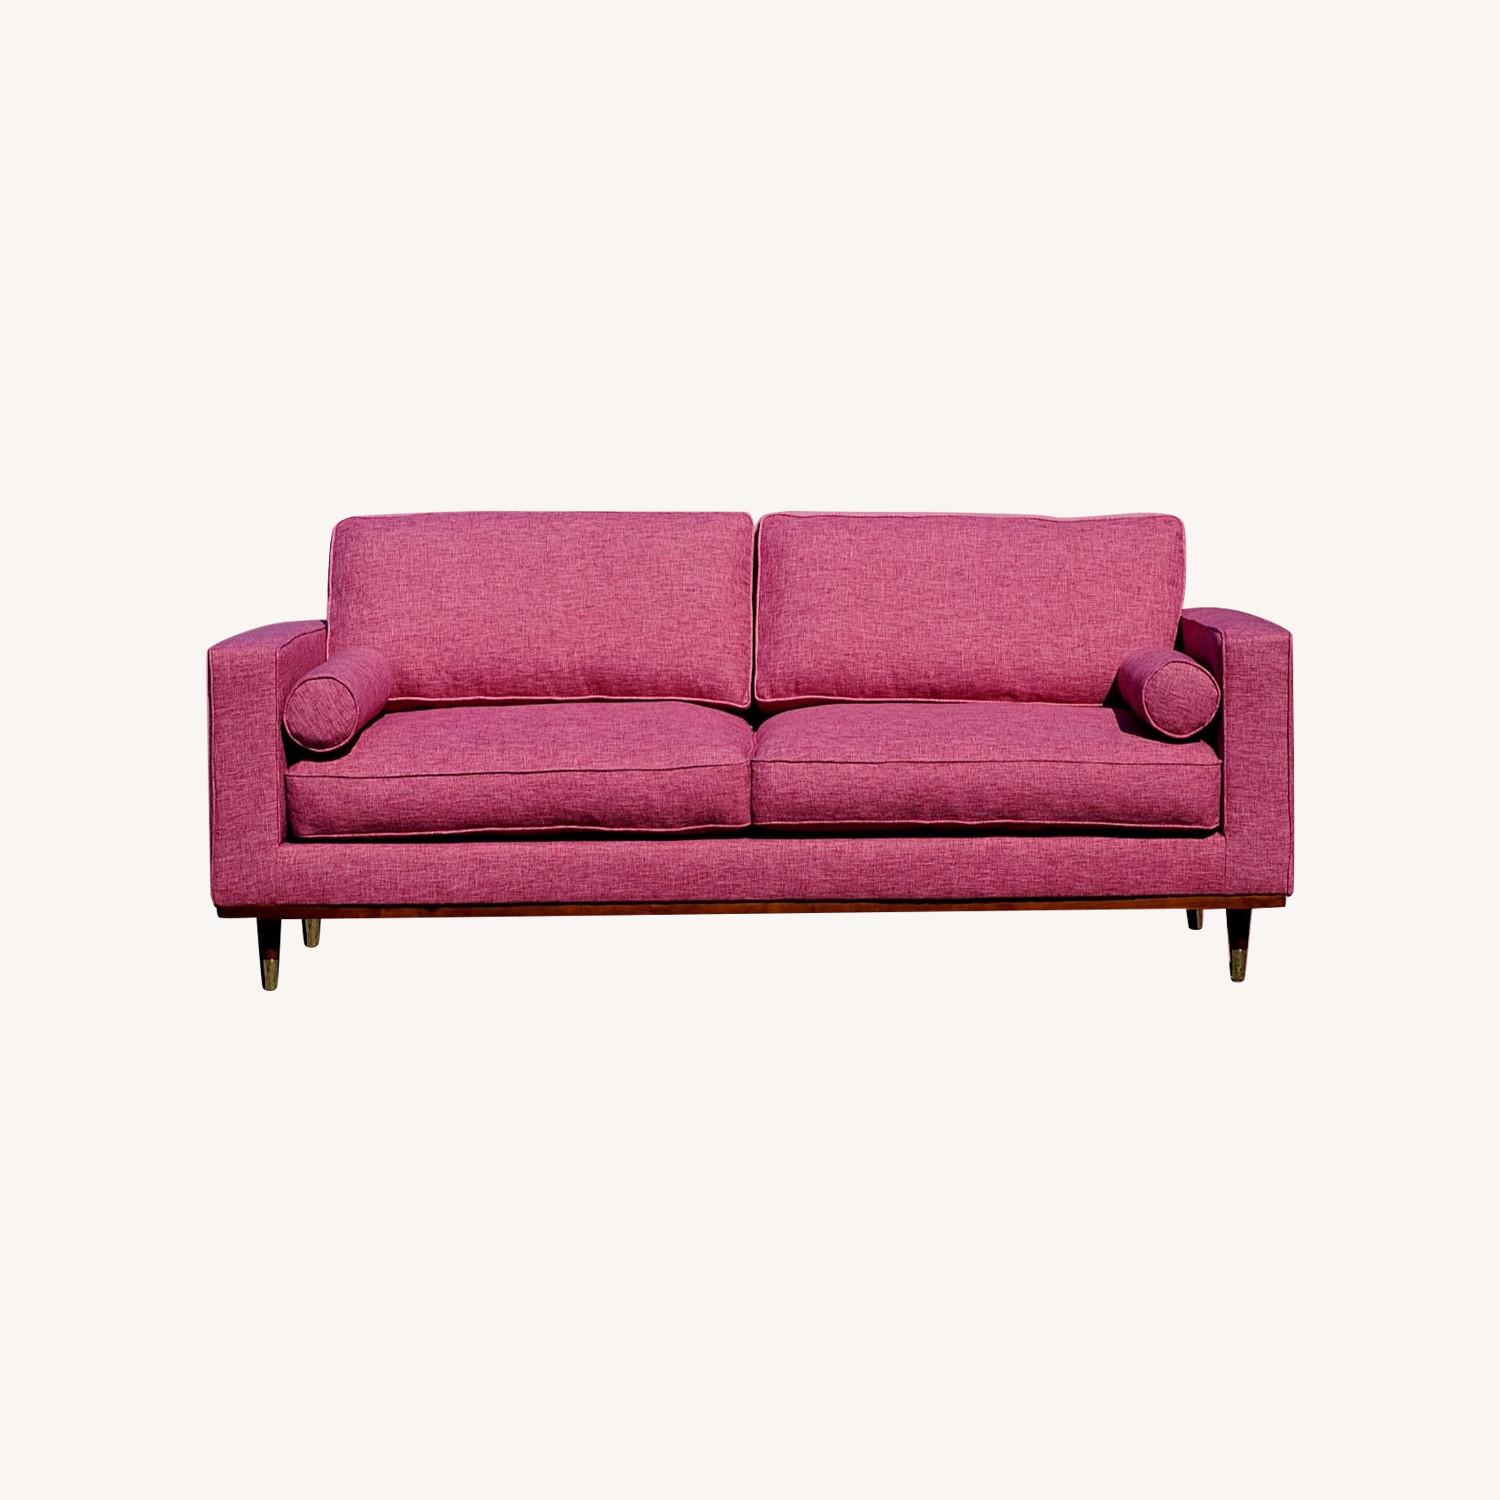 Brooklyn Space Introspect Mid-Century Modern Sofa - image-0